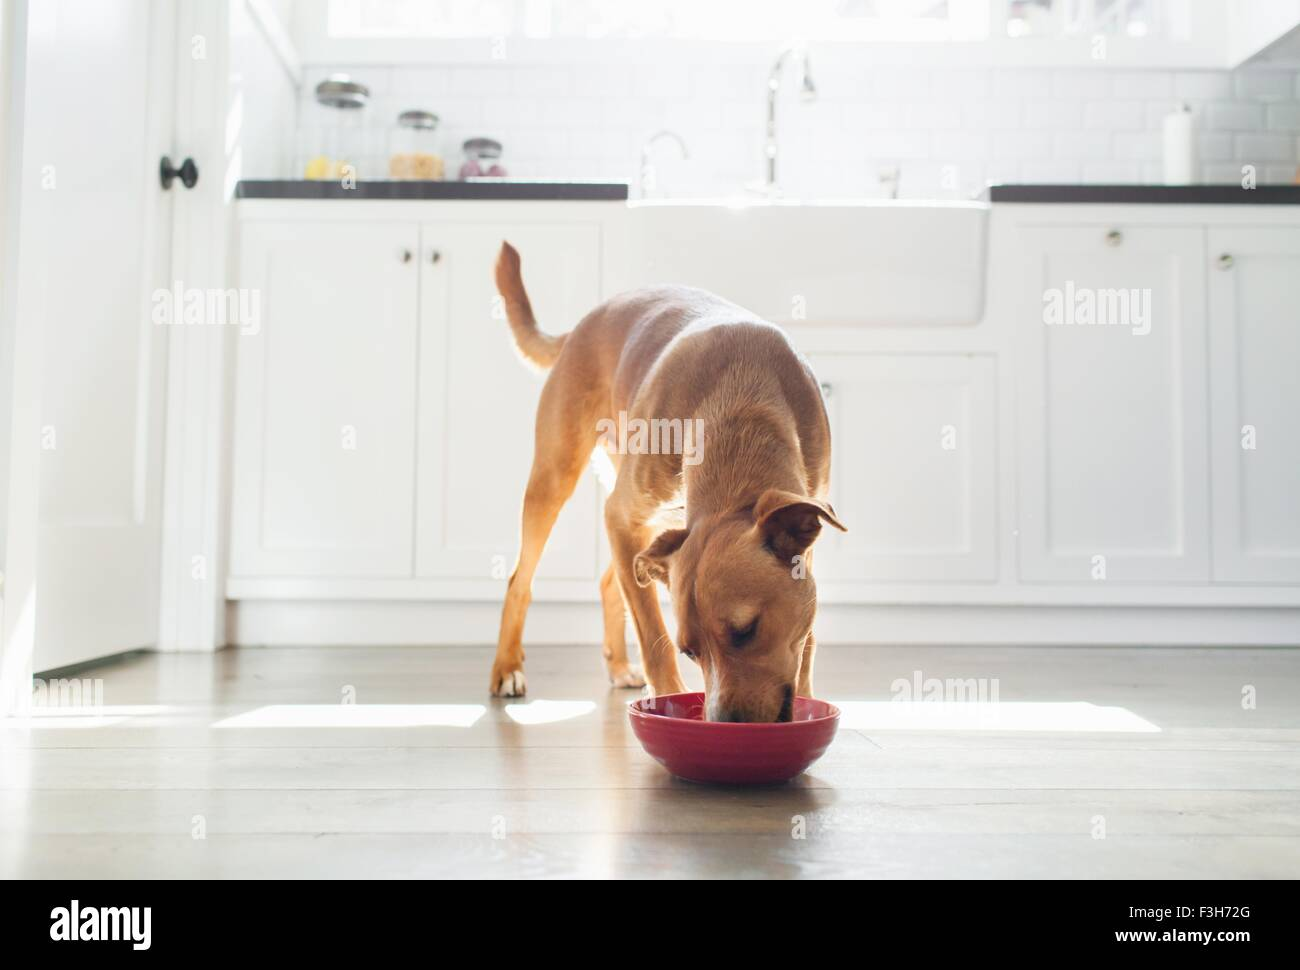 Front view of tan coloured dog in kitchen eating from red bowl - Stock Image